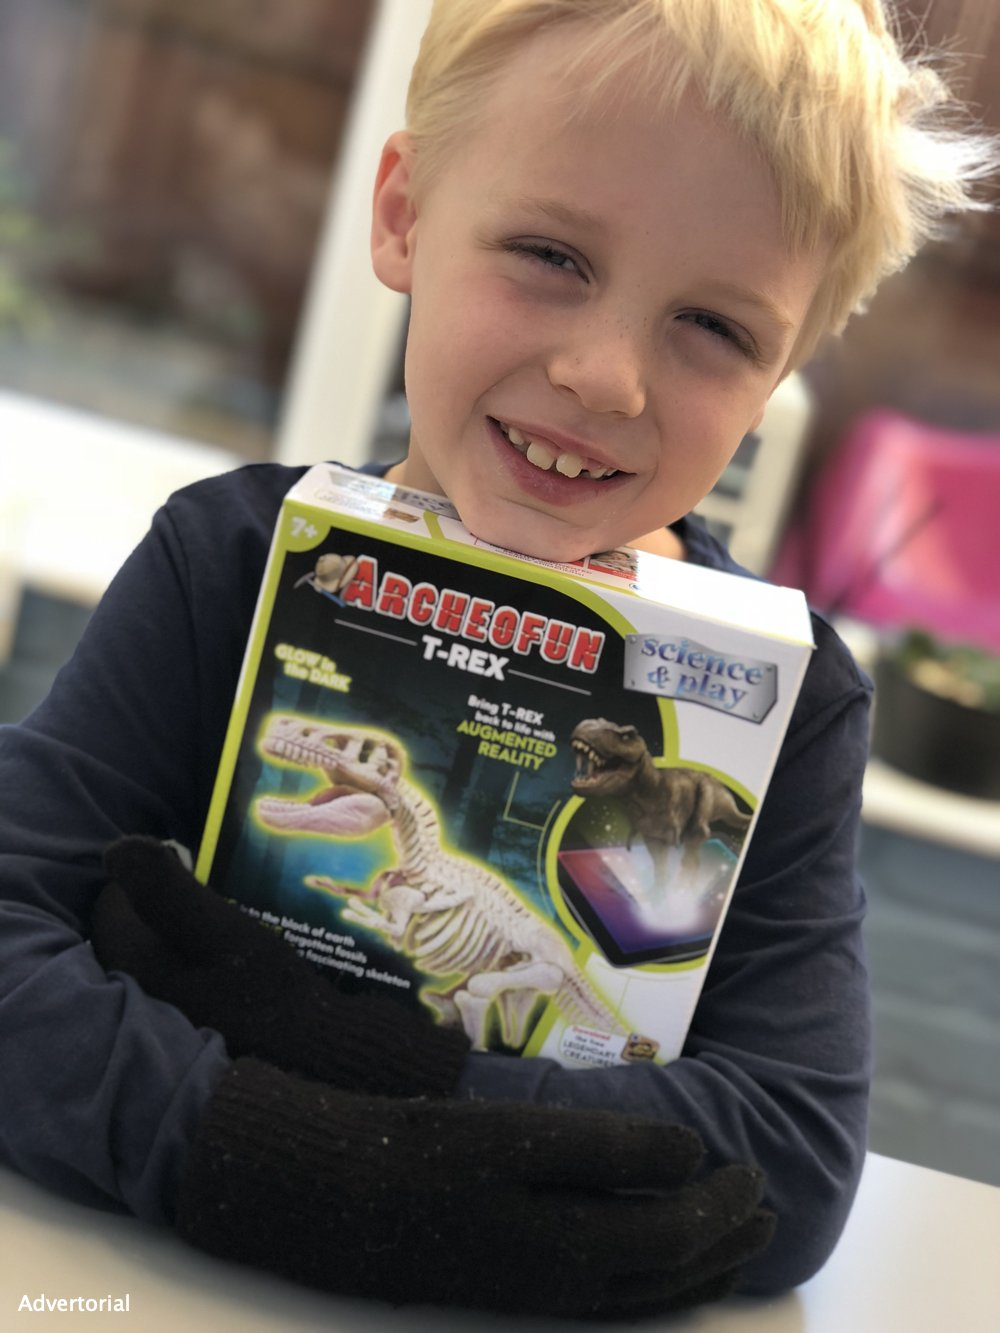 boy holding a Archeofun glow in the dark t-rex archeology kit